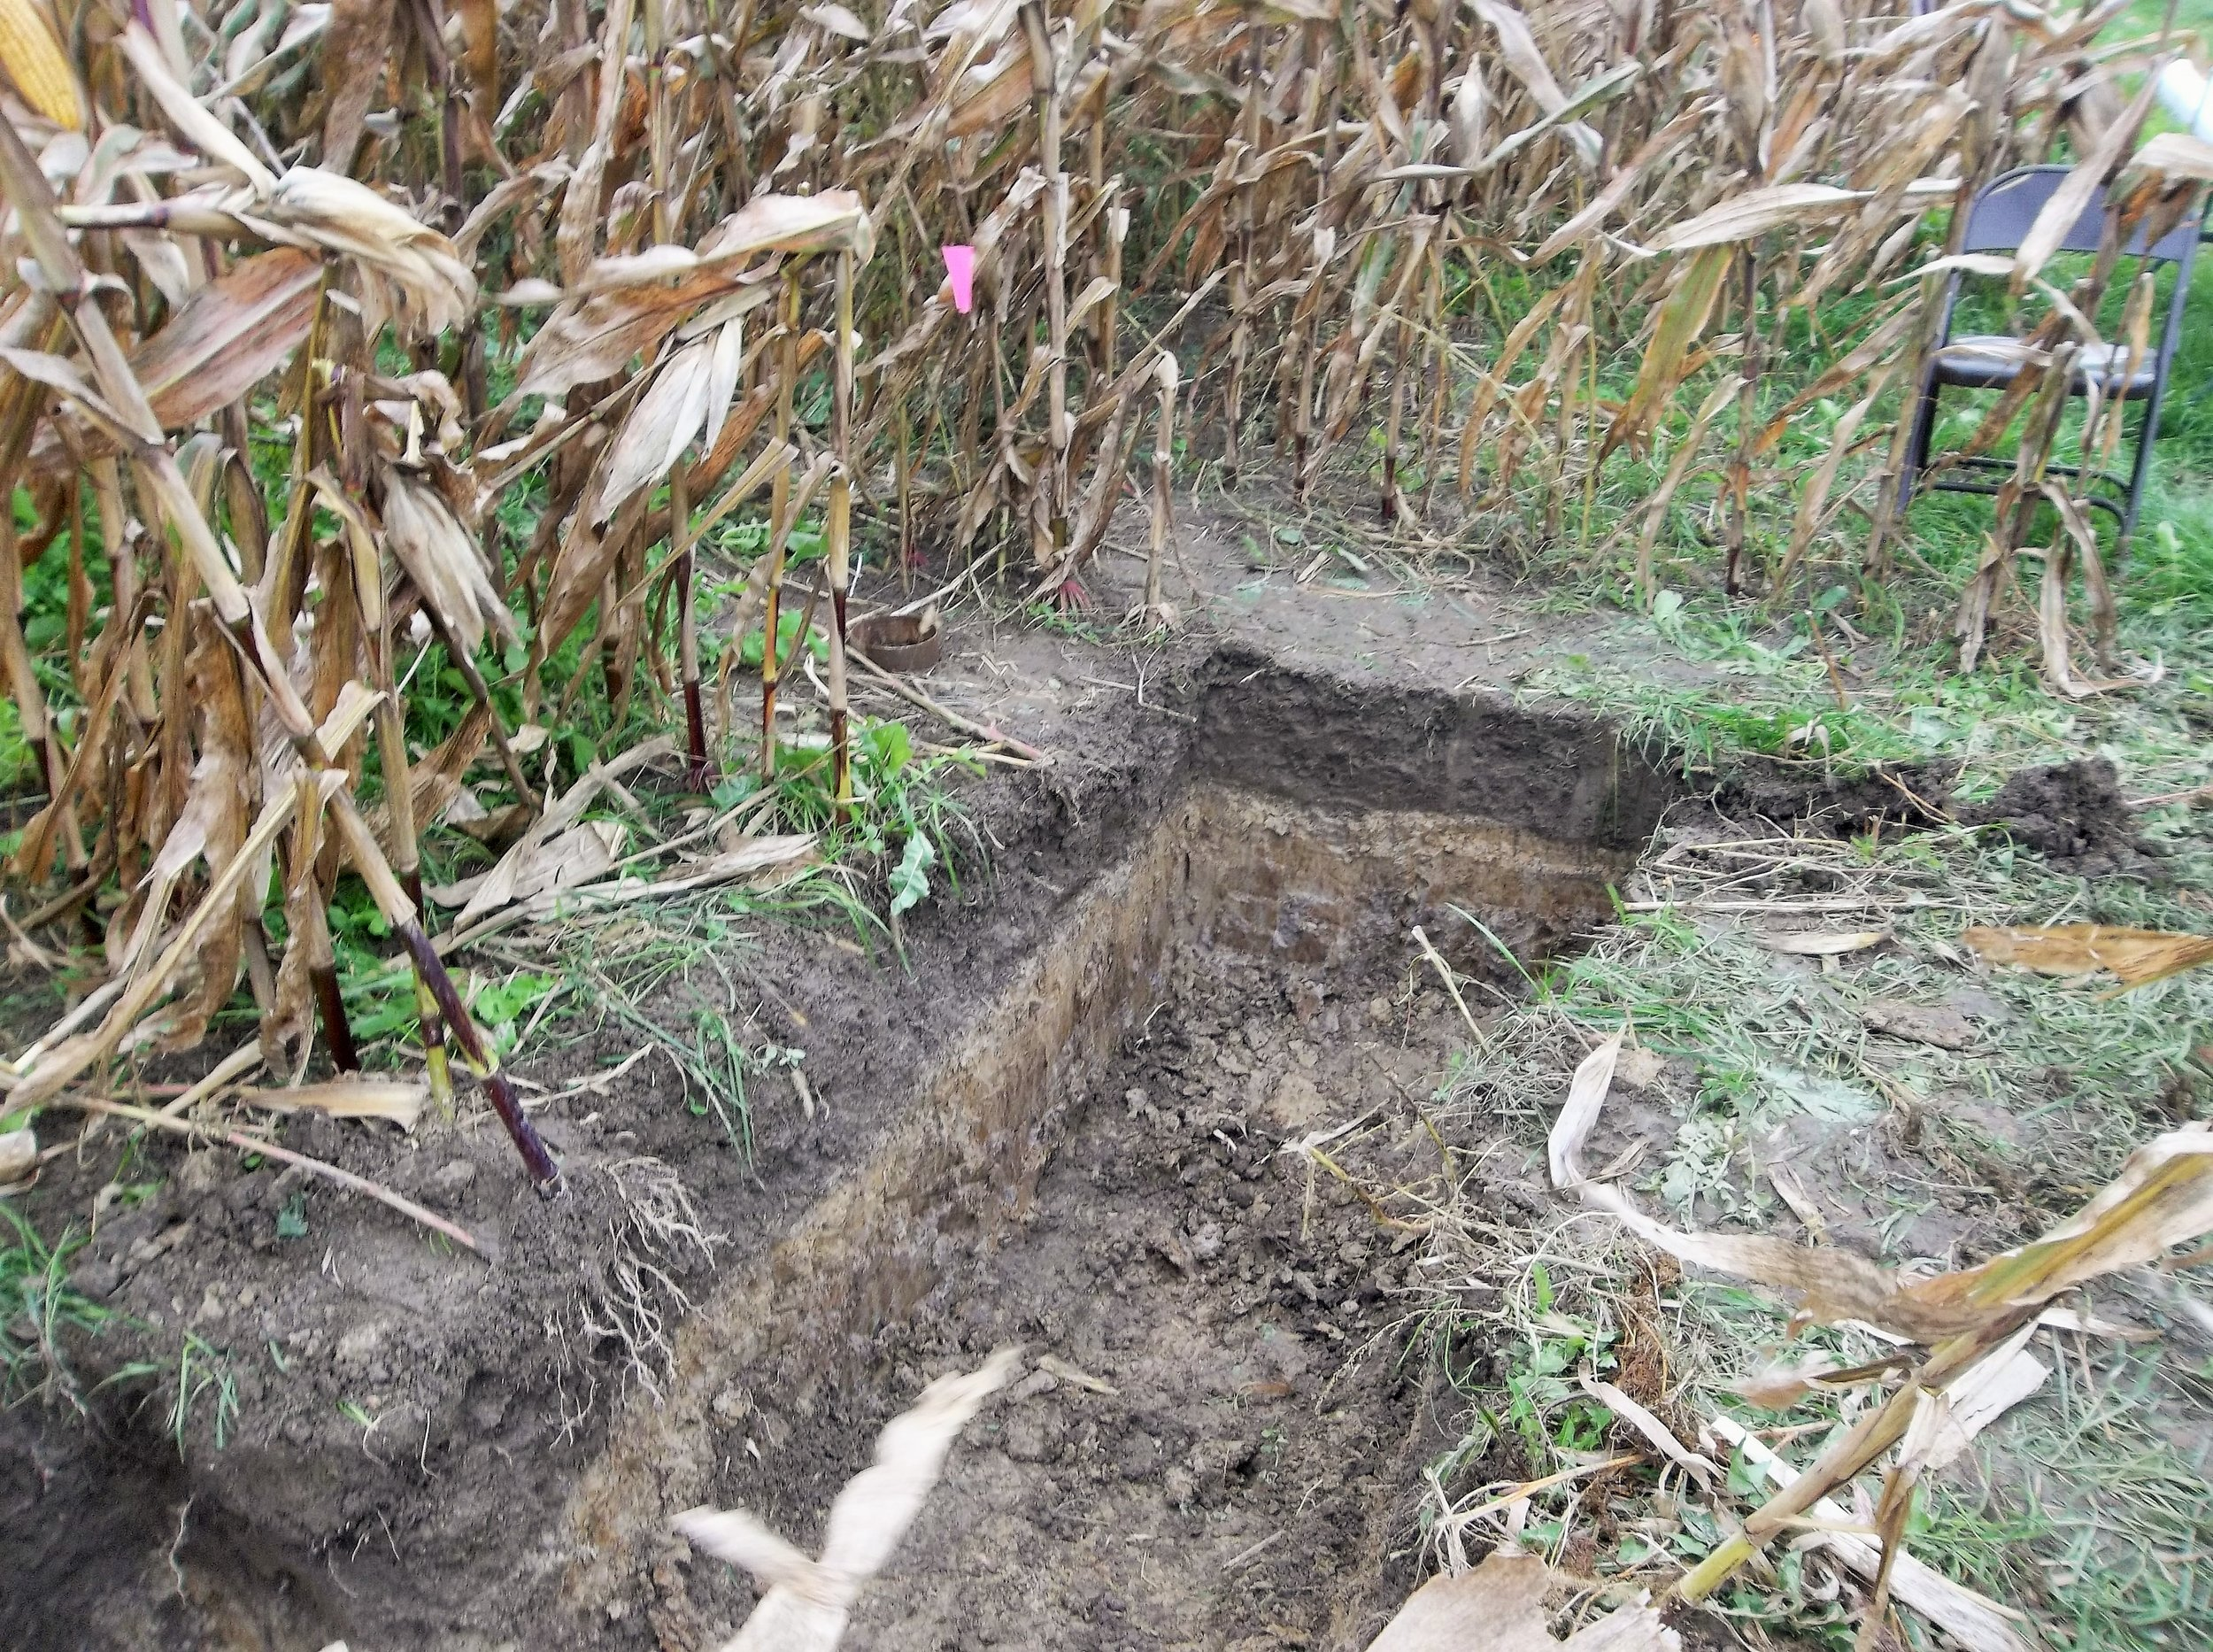 Soil test pit shows demarcation between soil types. Dark topsoil has been aggressively managed to raise organic matter content.